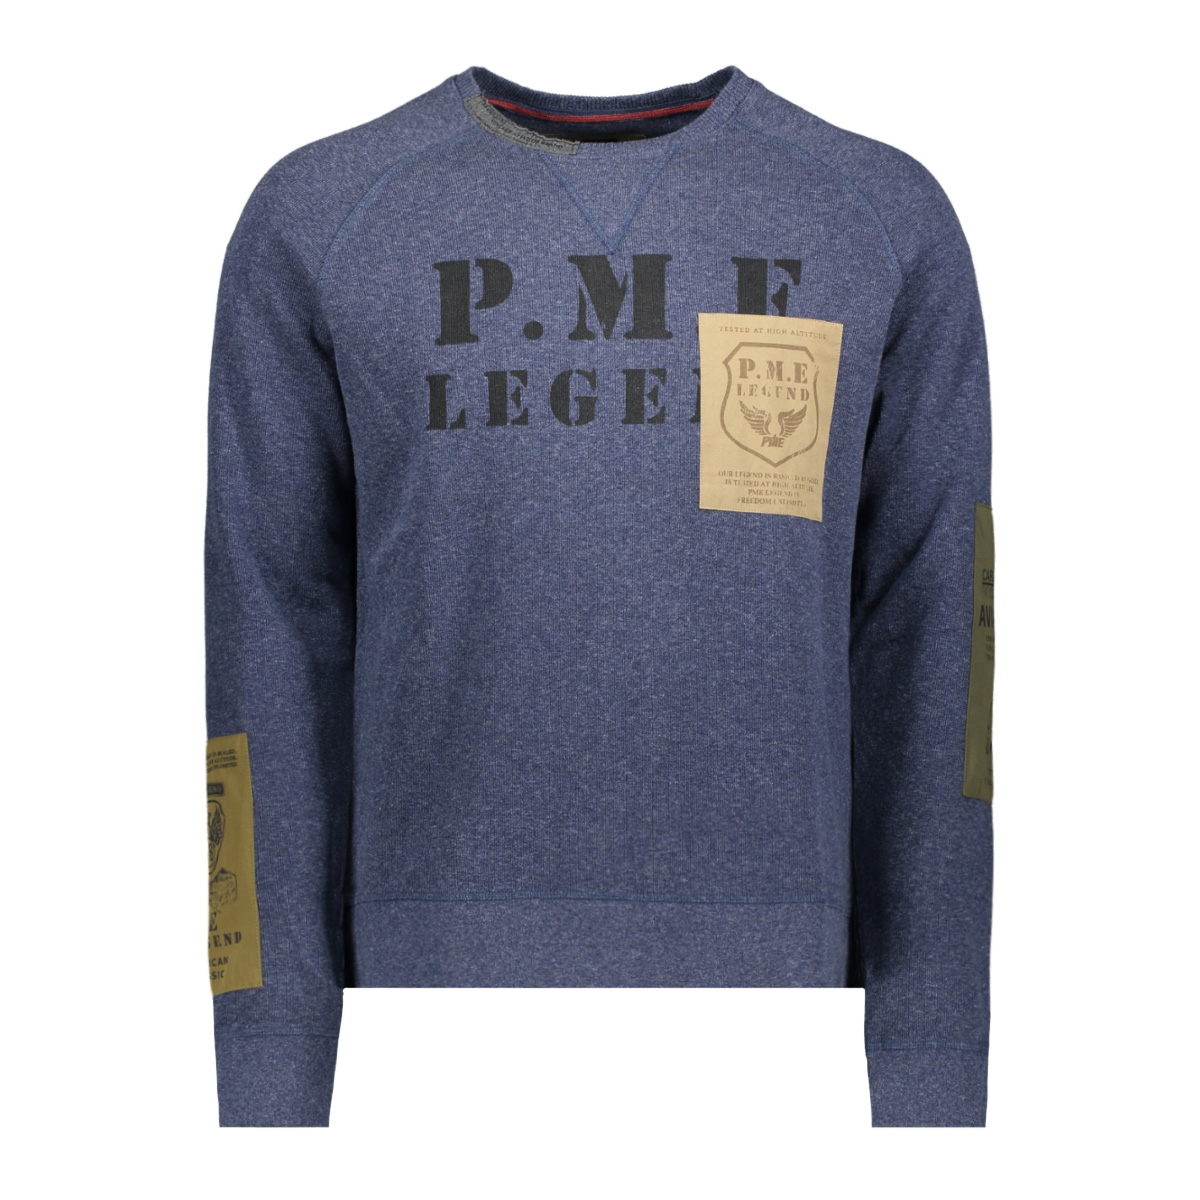 long sleeve t shirt pts196539 pme legend t-shirt 5118